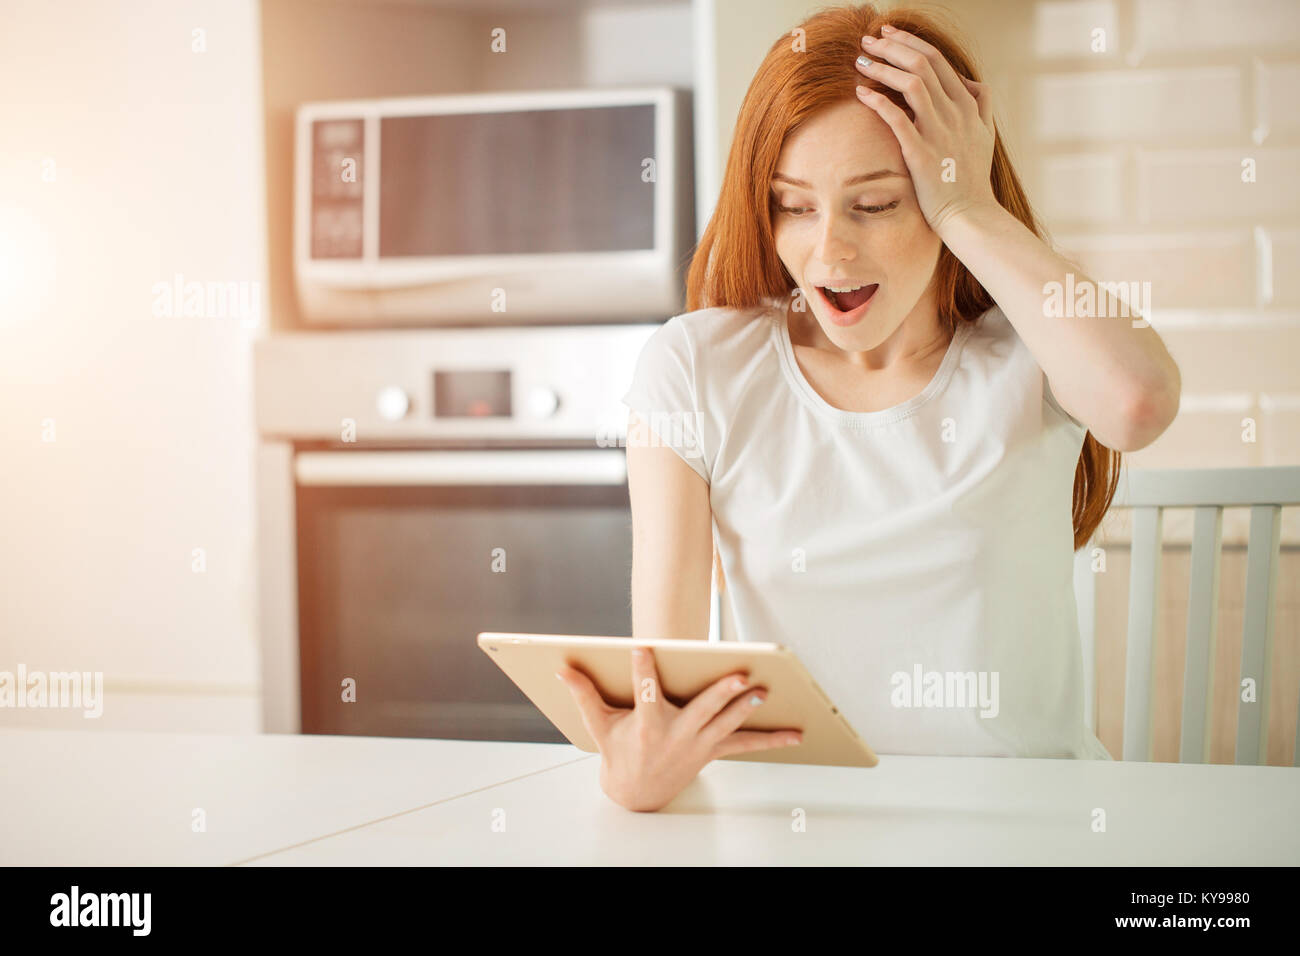 redhair girl happy smiling on digital table with wining something Stock Photo